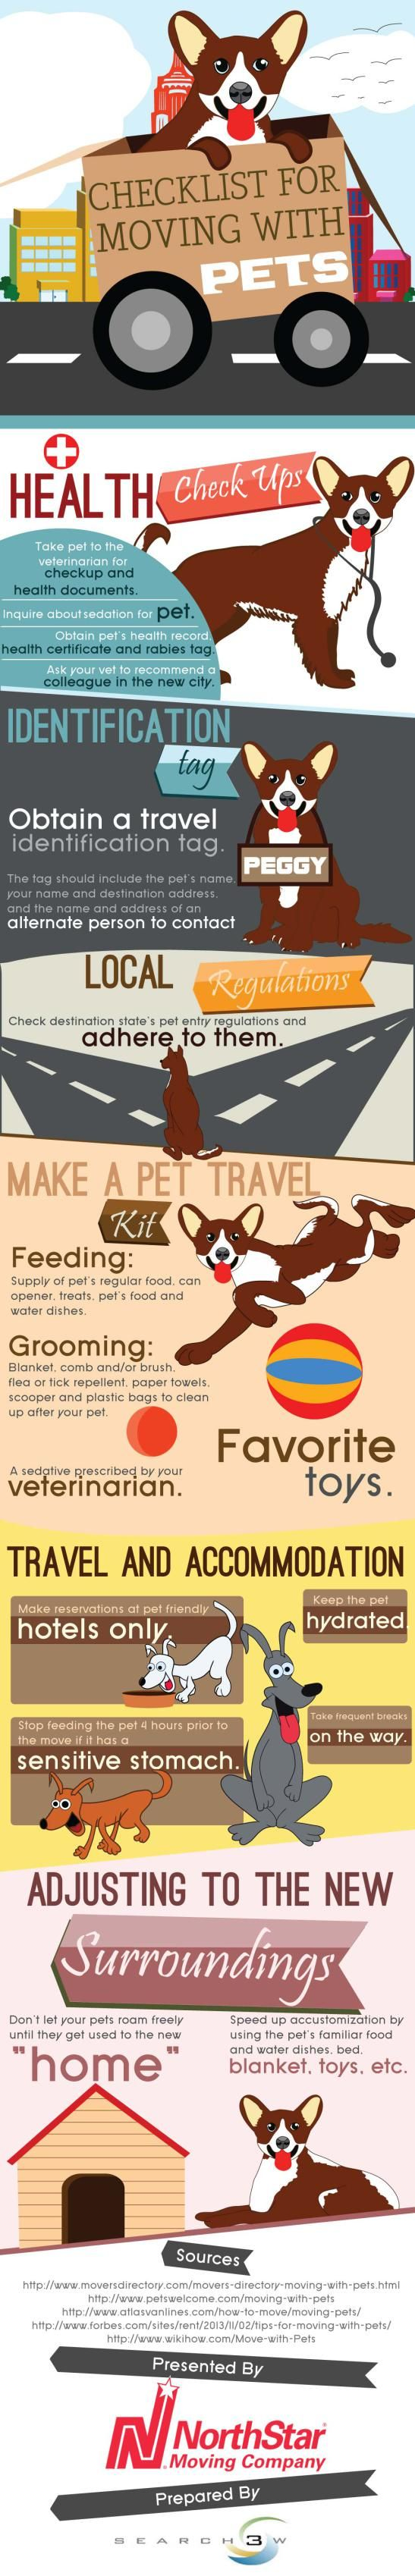 This infographic titled 'Checklist For Moving With Pets' assists pet owners with information about things to do when moving with pets. Moving is one of the busiest time for every family and in the hustle-bustle of moving it is very likely that the moving families forget some important preparation regarding moving their pets. This infographic provides them a to-do list of those activities.